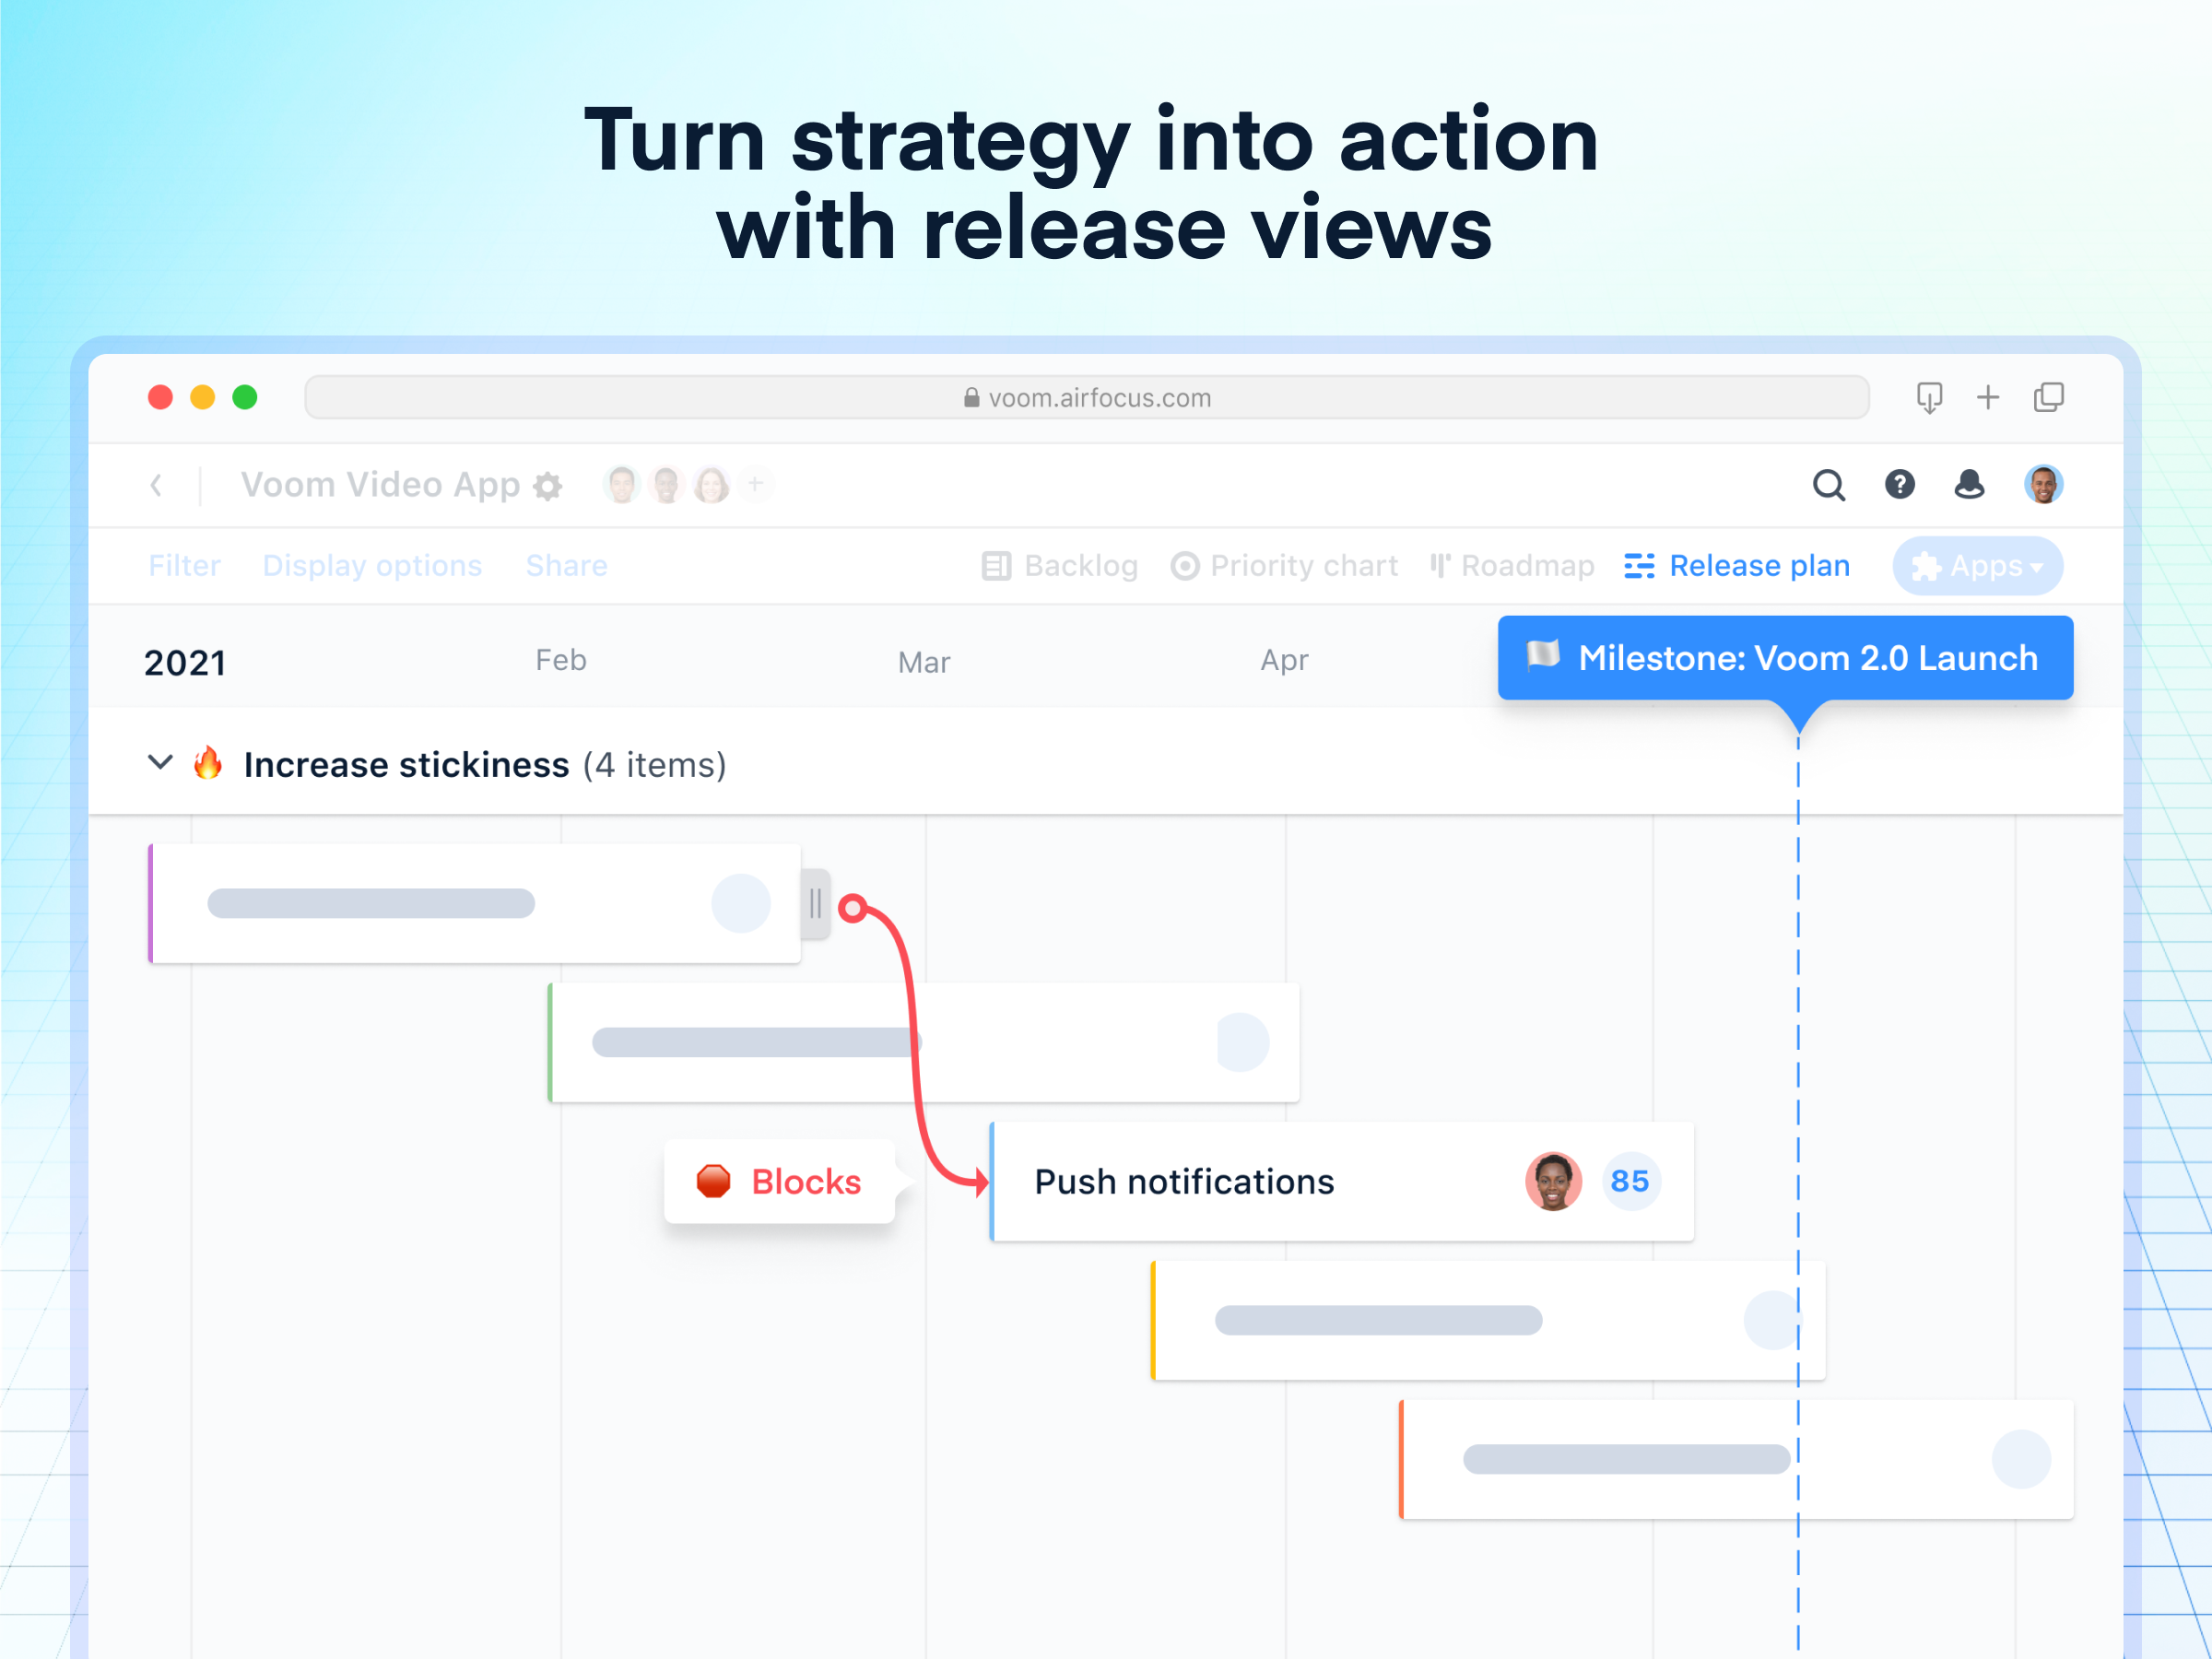 airfocus Software - Turn strategy into action with release views: Take a closer look at how your strategy is developing with a timeline view. Coordinate cross-team dependencies and remove blockers, ensuring a smooth process for everyone involved.